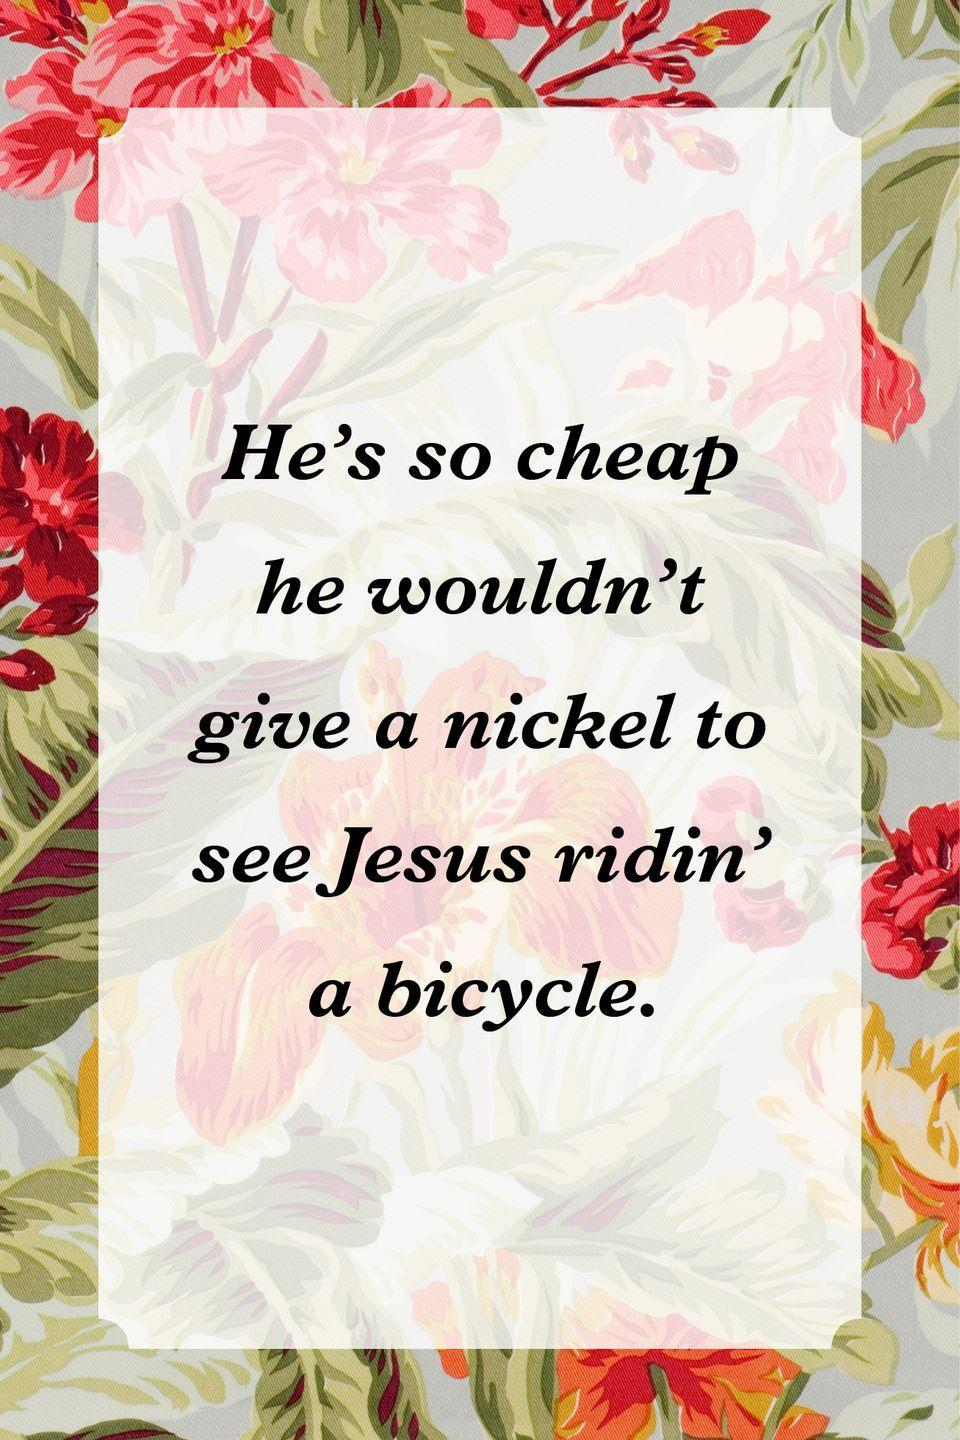 """<p>""""He's so cheap he wouldn't give a nickel to see Jesus ridin' a bicycle.""""</p>"""